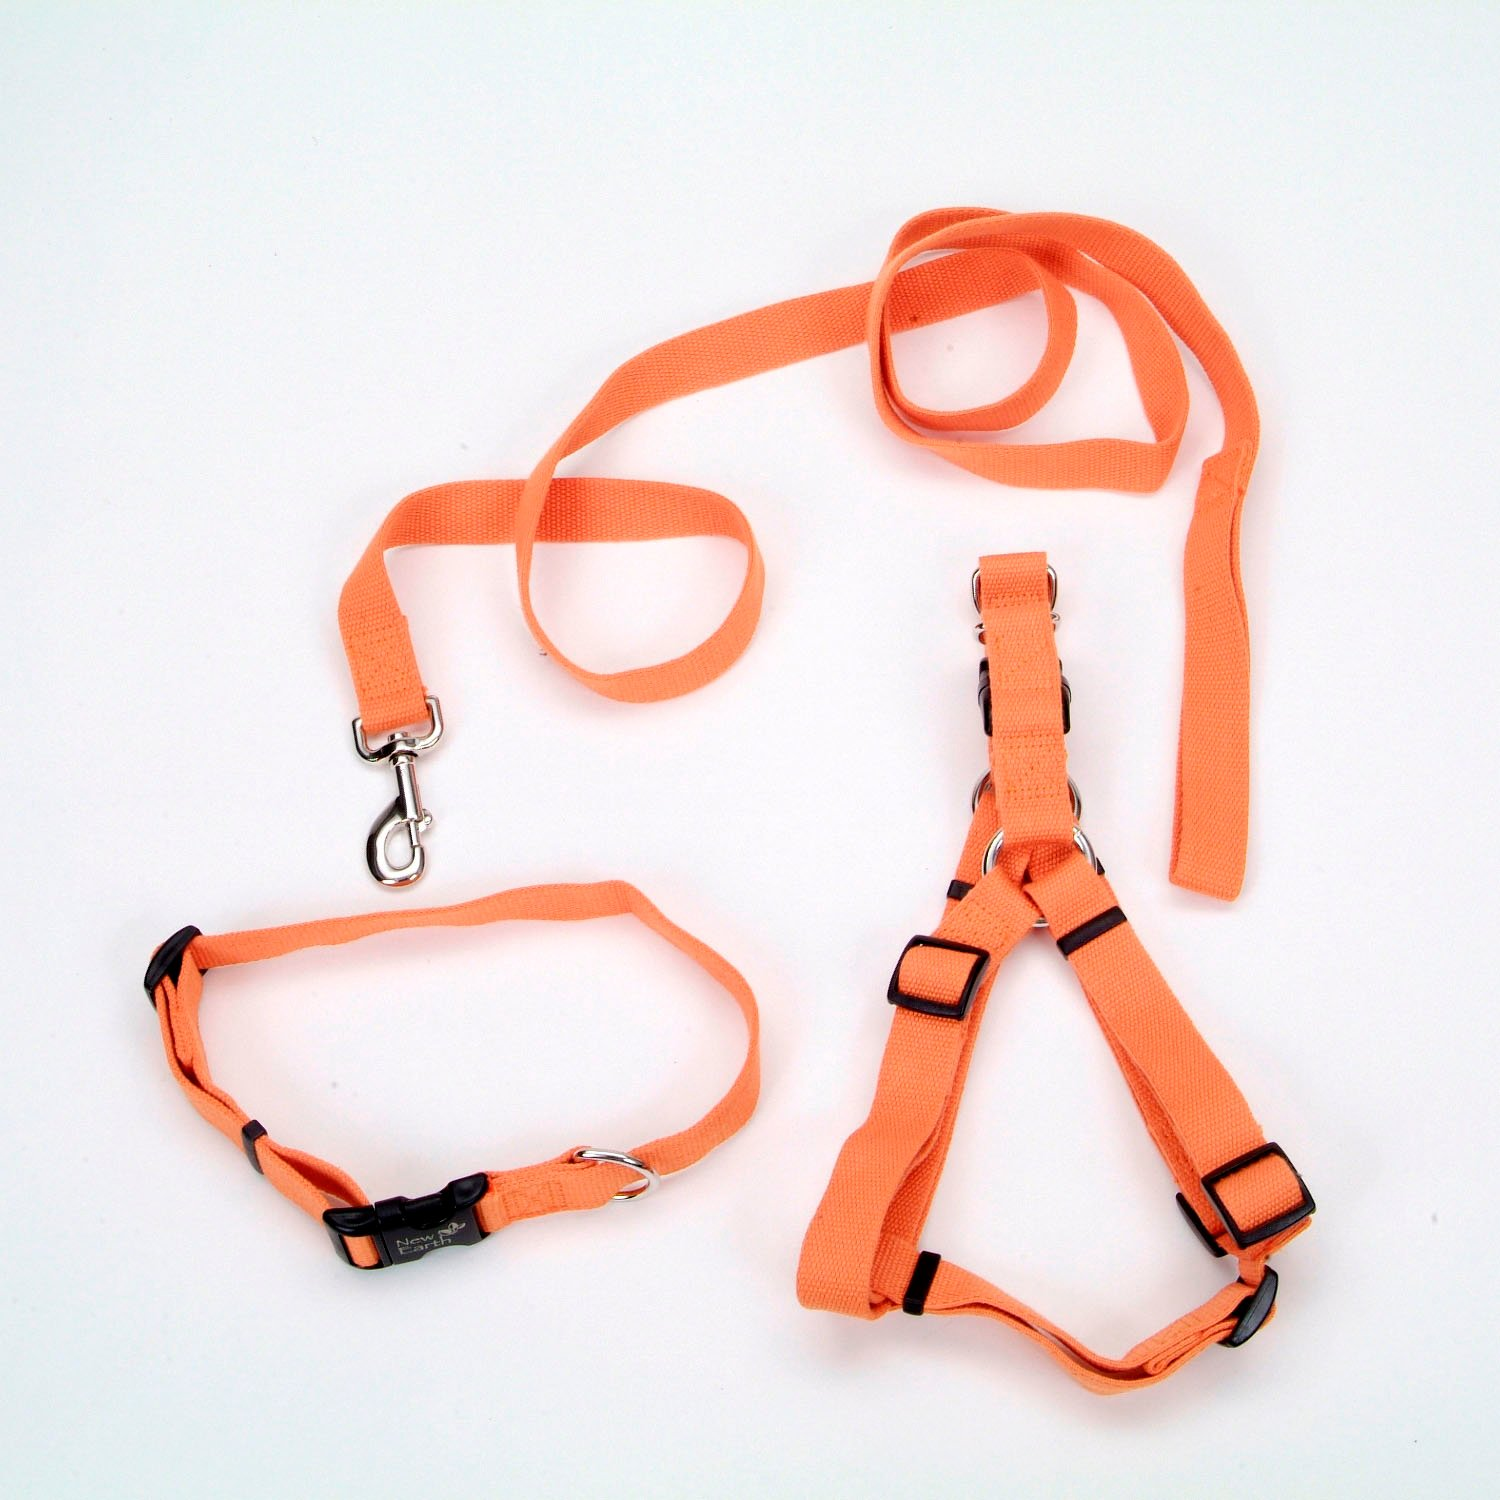 Coastal Pet New Earth 3-Piece Soy Dog Leash Harness and Collar Bundle in Orange